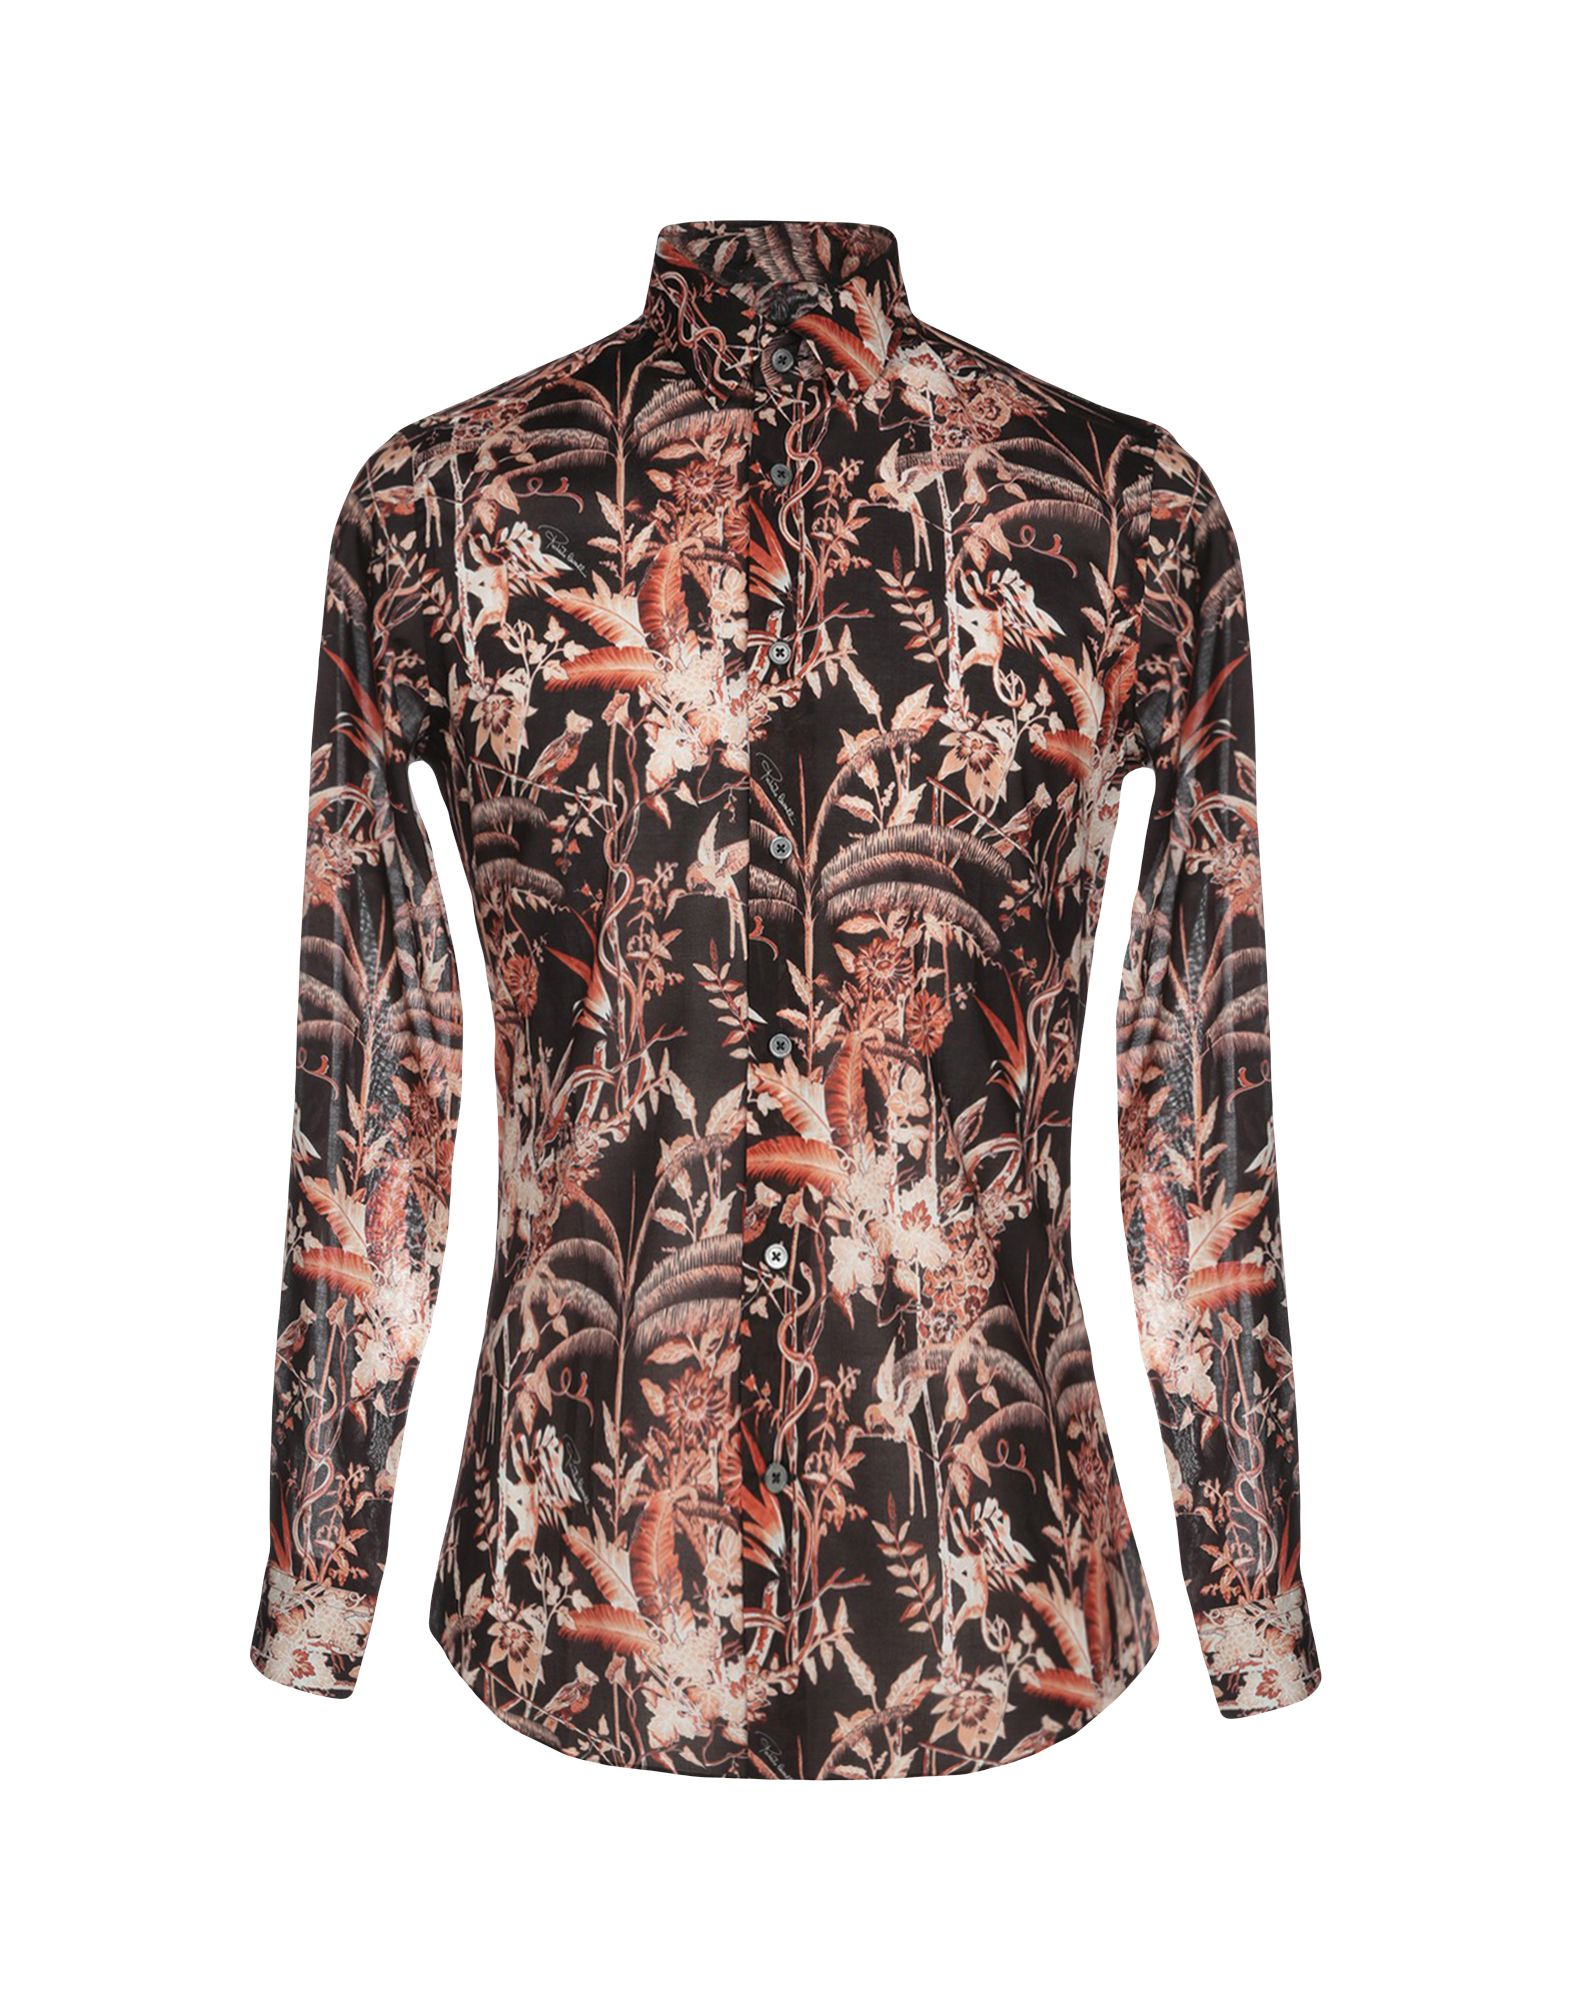 b29a0061 Roberto Cavalli Patterned Shirt - Men Roberto Cavalli Patterned ...